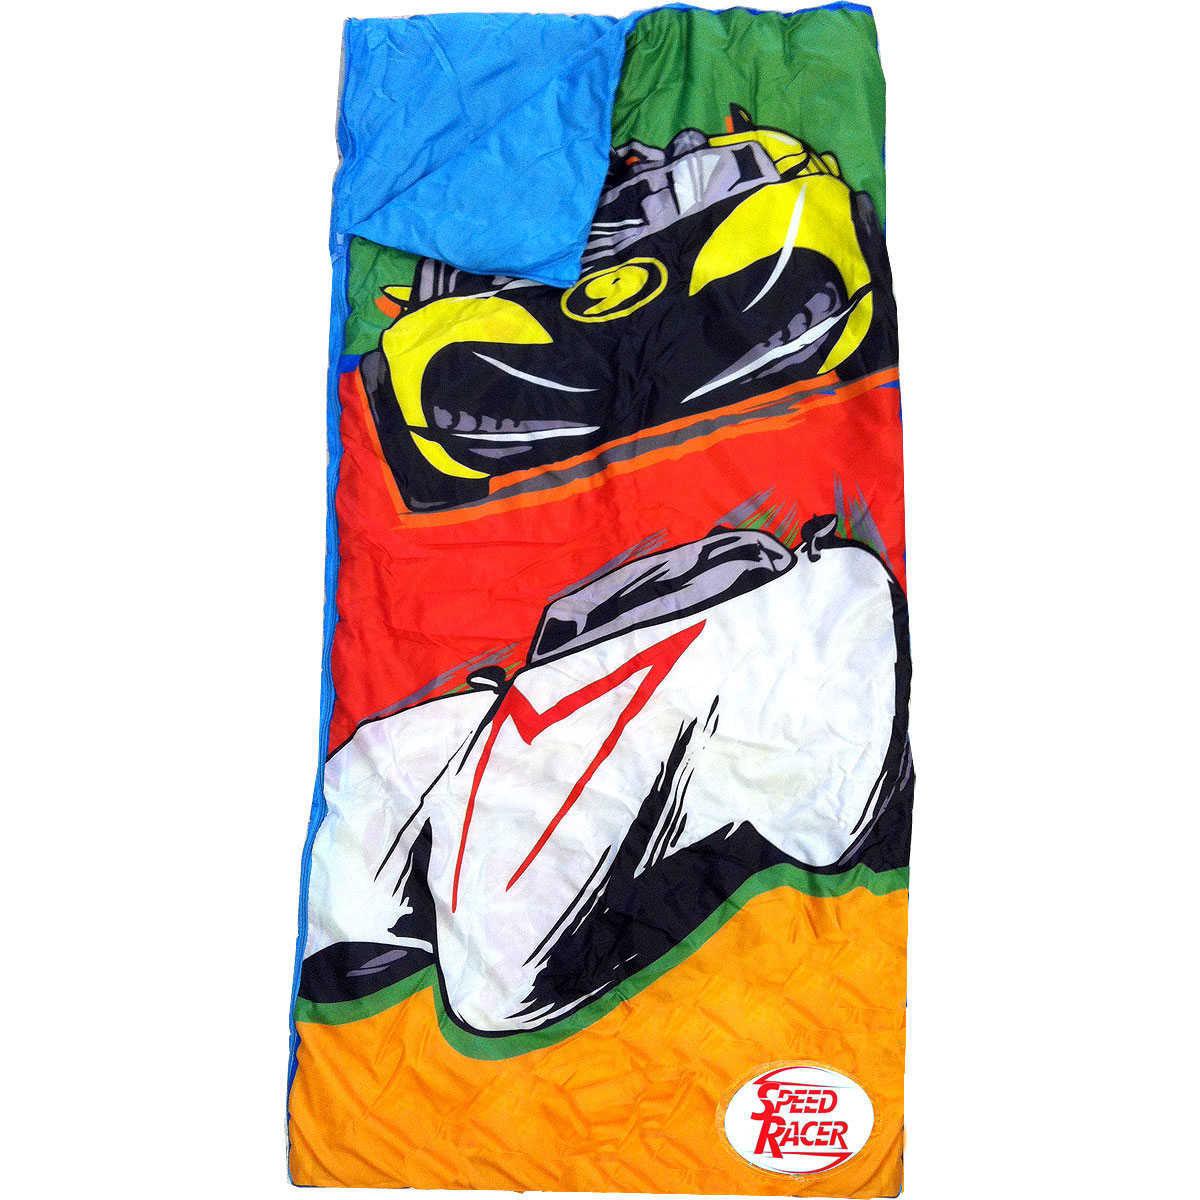 Speed Racer Slumber Bag 2pc Sleepover Backpack Set